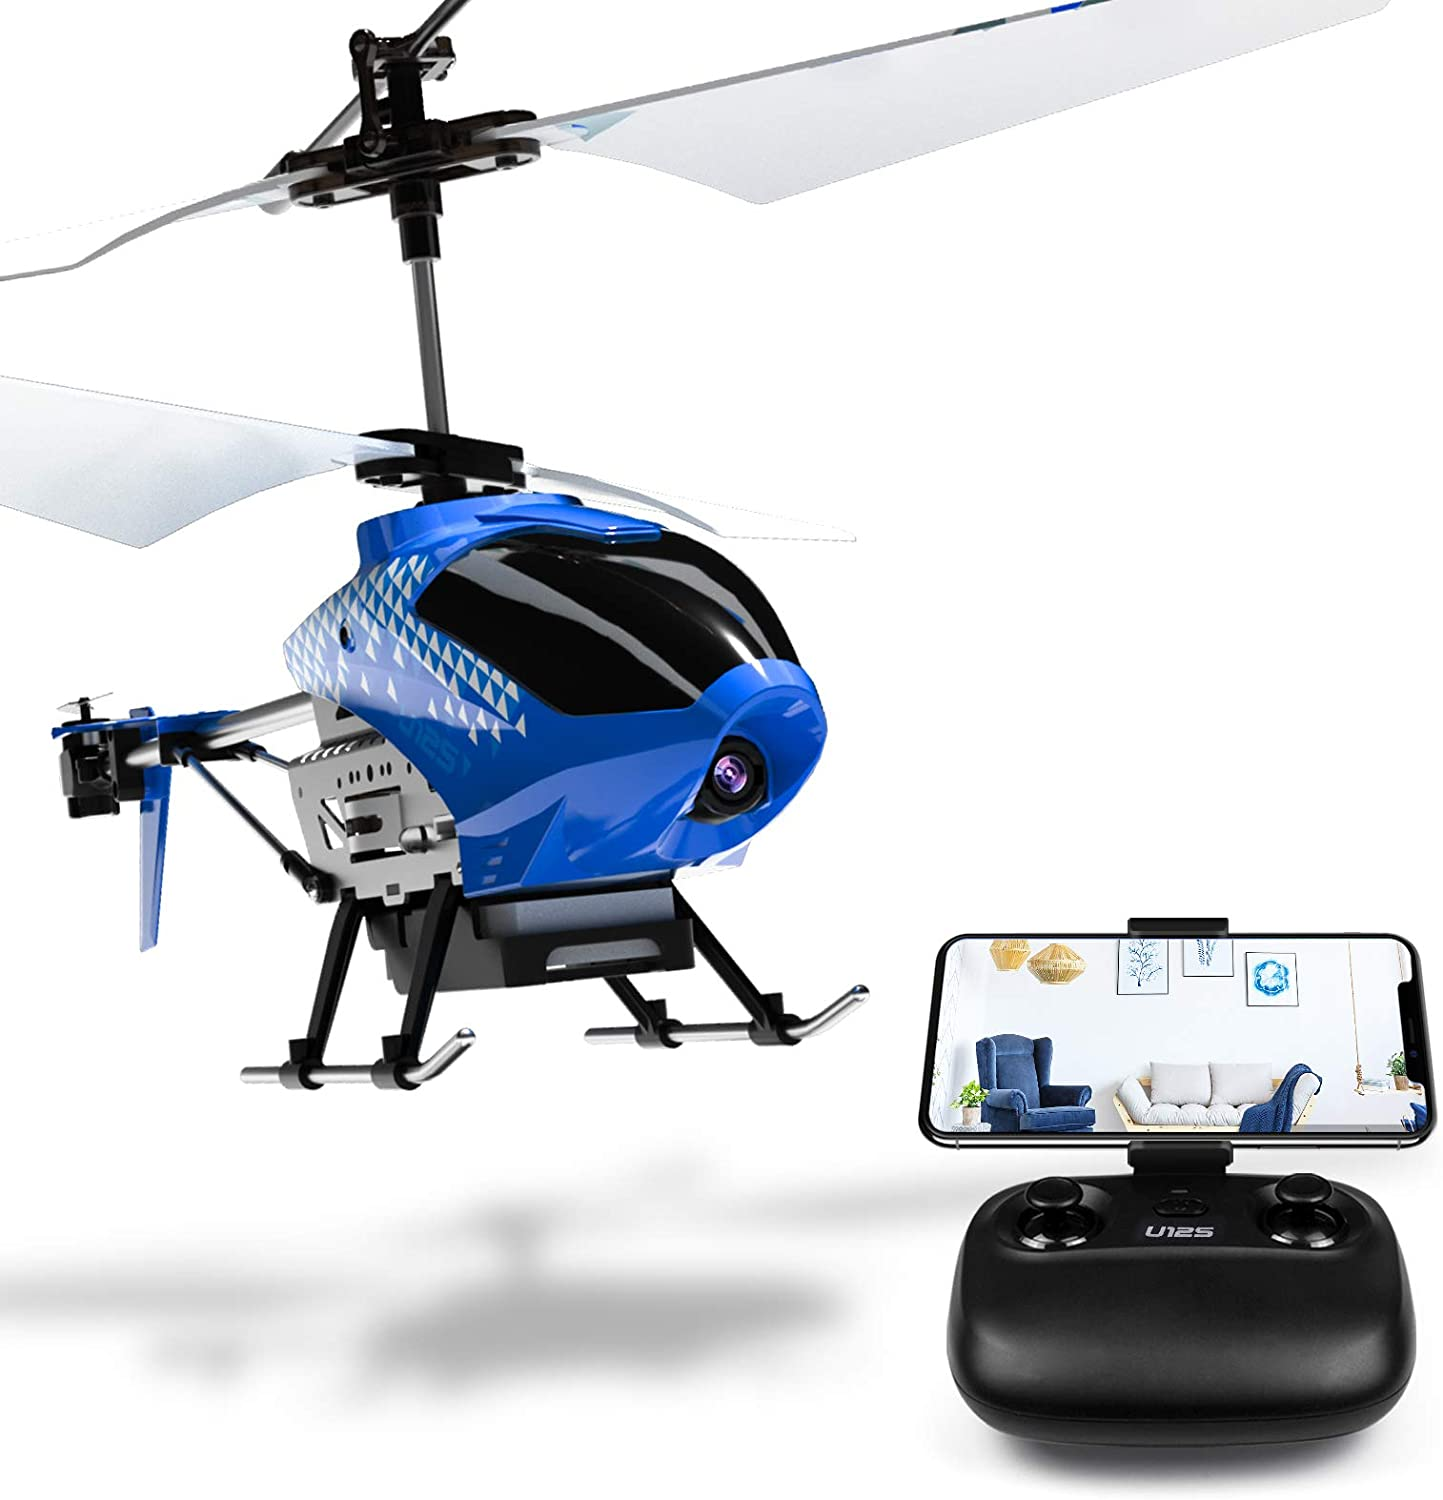 Cheerwing U12S RC Helicopter with Camera